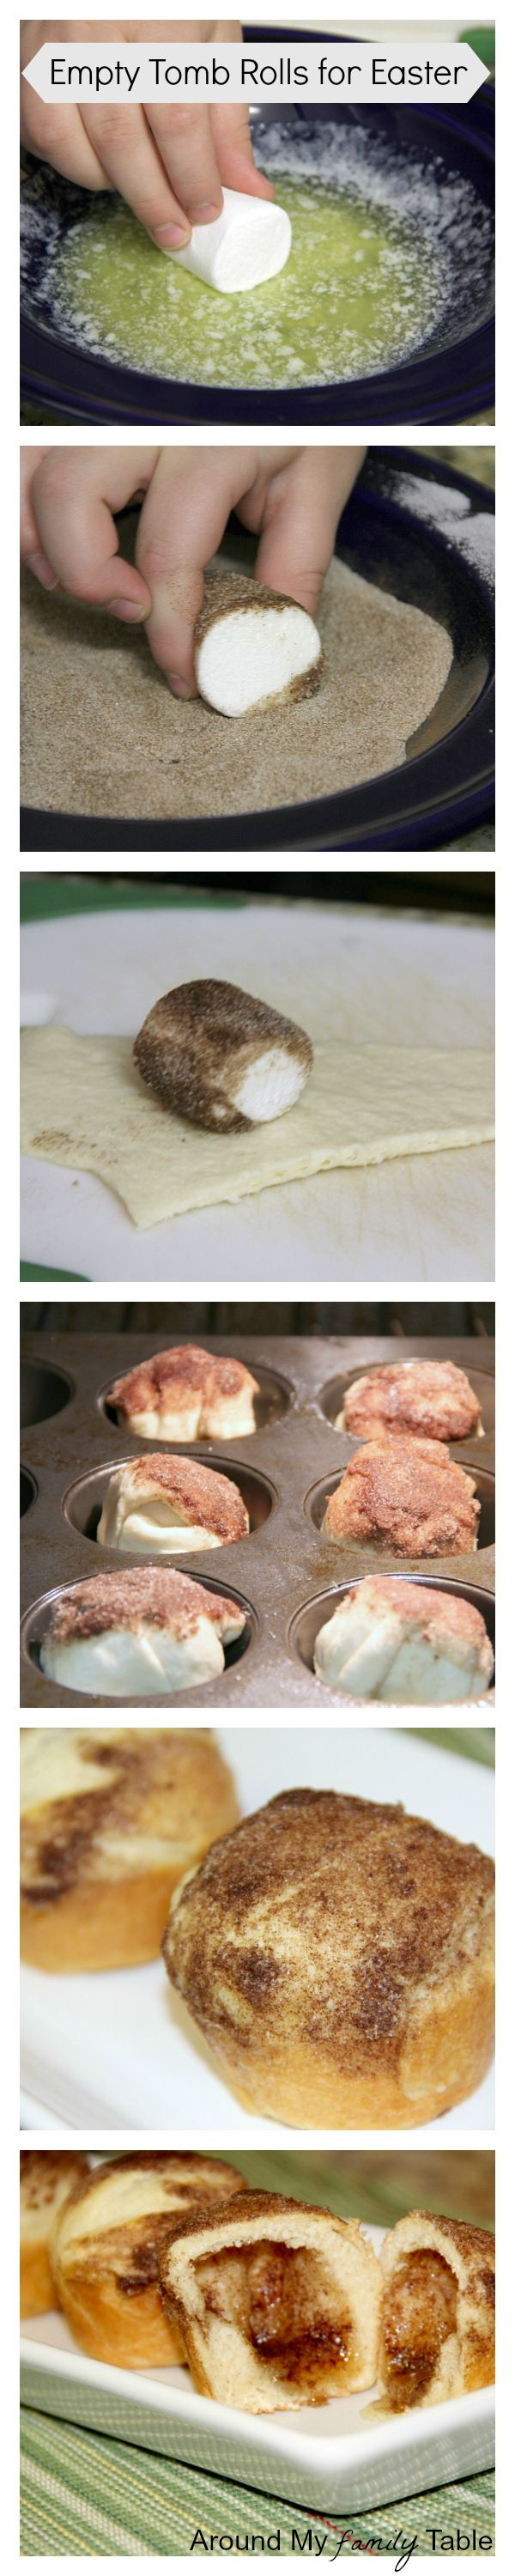 1492 best easter recipes and crafts images on pinterest spring marshmallow hollow gooey rolls recipe pinner ive found them a friends mom used to make these and ive been dying for the recipe negle Choice Image